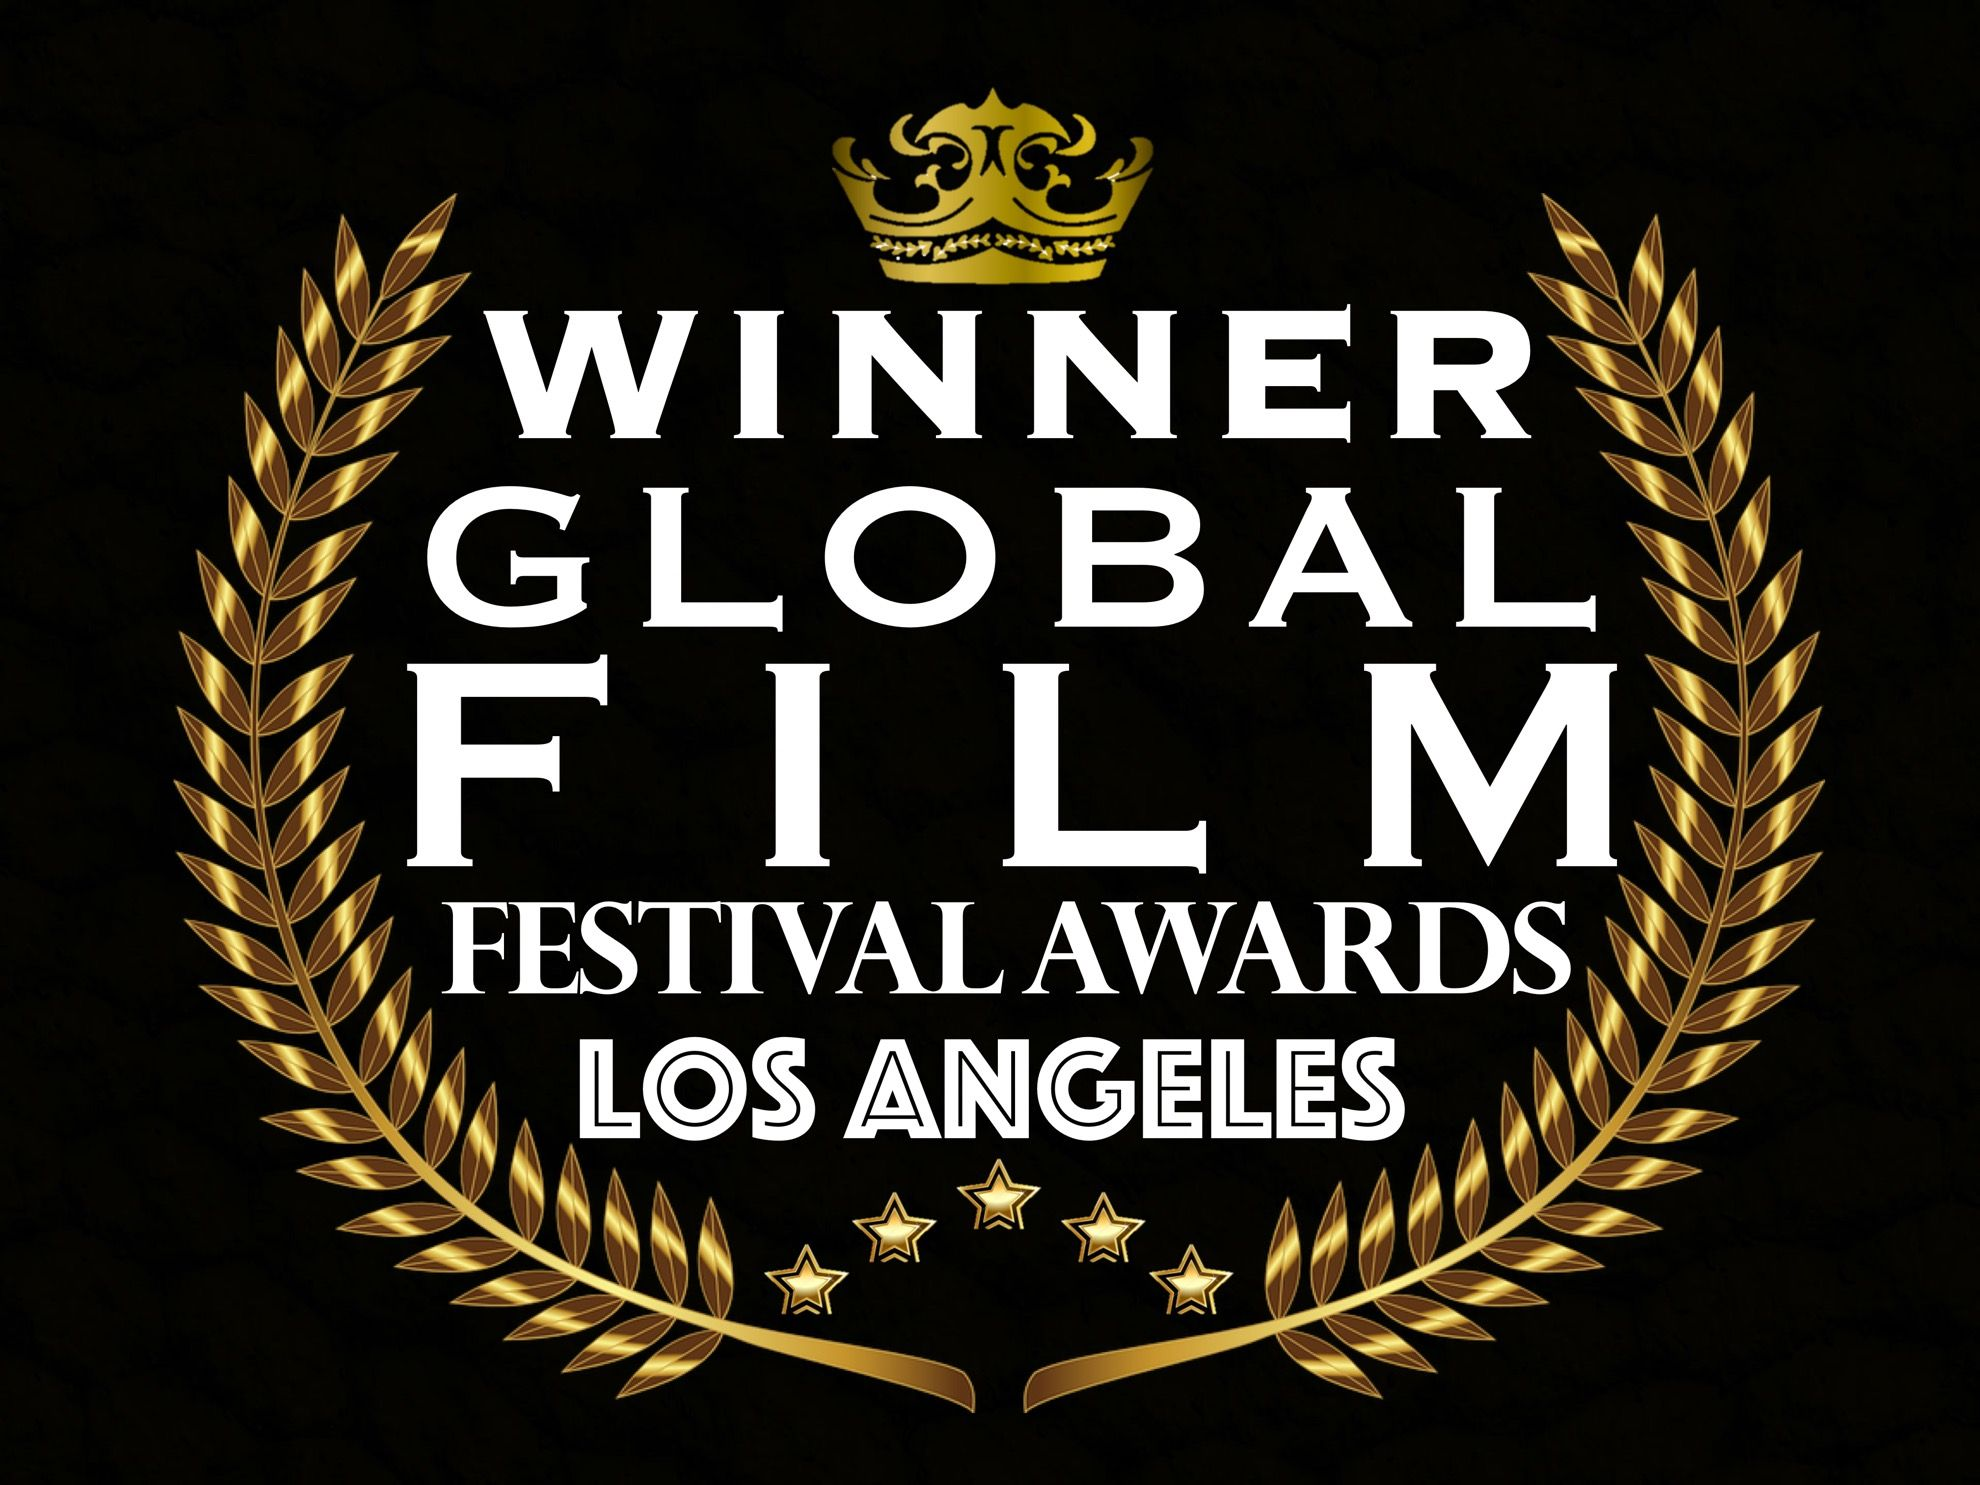 We Re Winners Of Three Awards At The Global Film Festival Awards From The August 2018 Competition We Ve Won Best I Los Angeles Music Best Trailers Awards